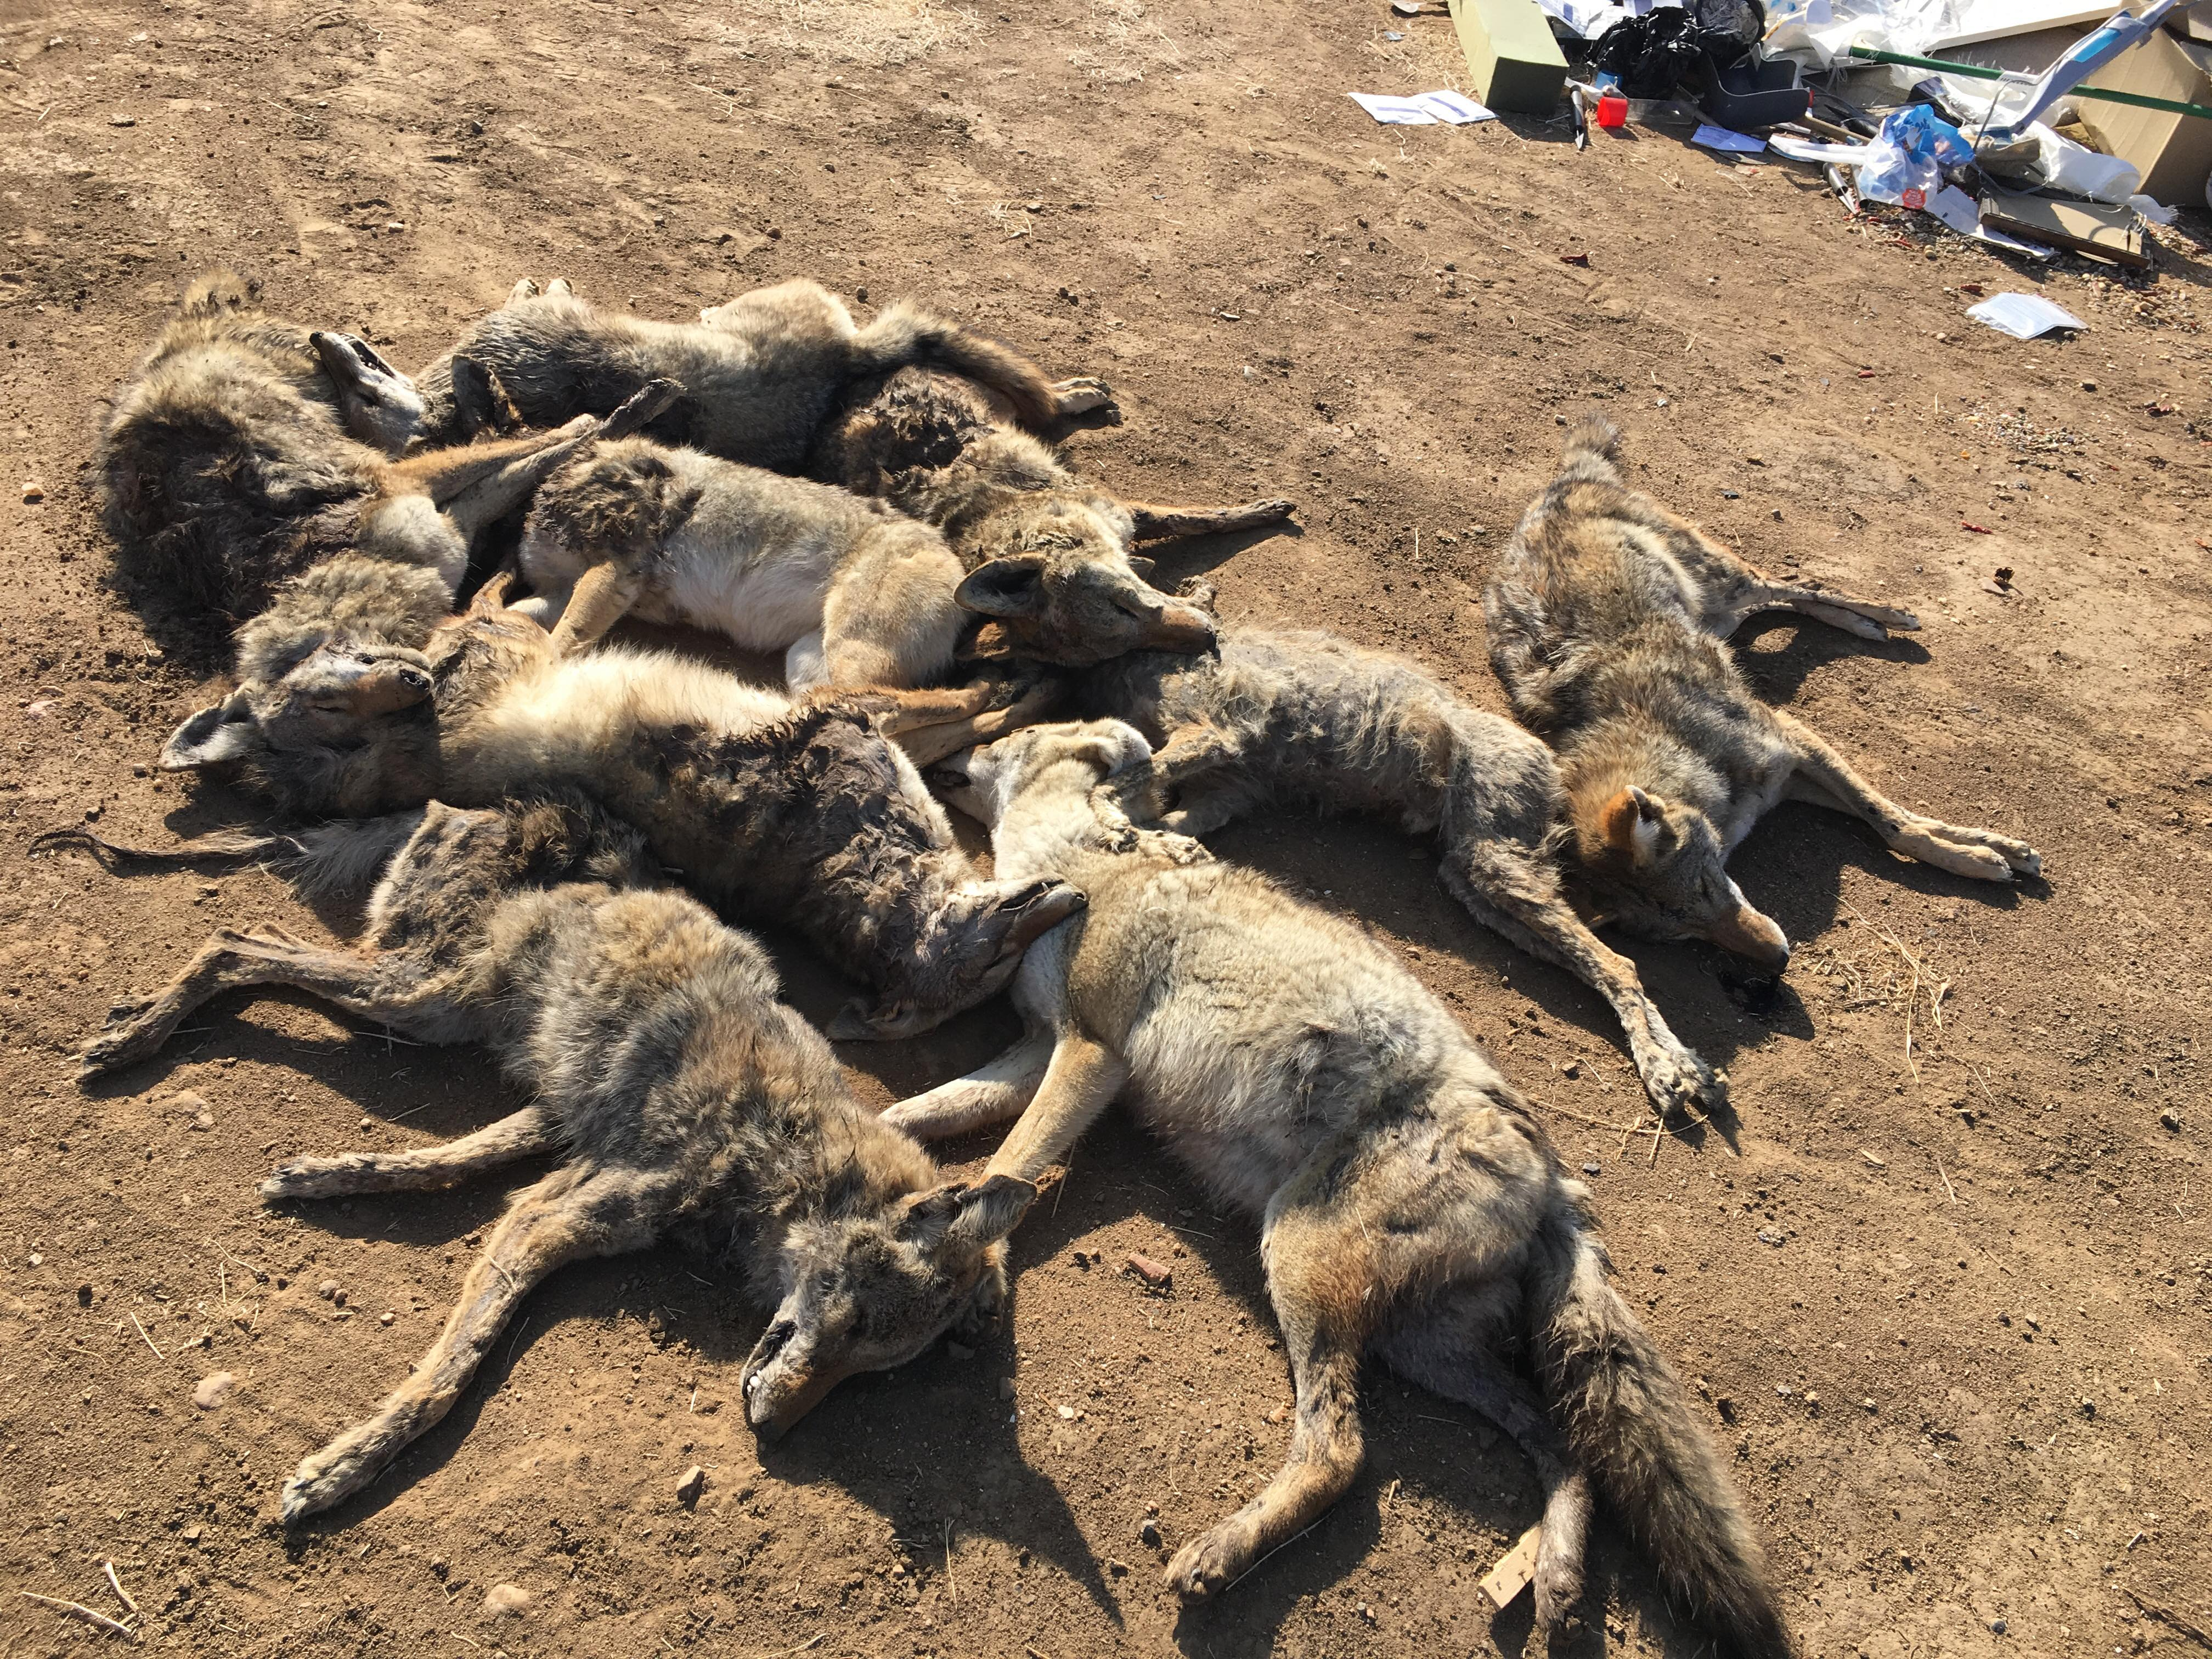 Dead coyotes found in the area of Panorama Drive and Morning Drive in Bakersfield, Calif., are seen in a photo provided Dec. 13, 2017, by Matt Douglas.